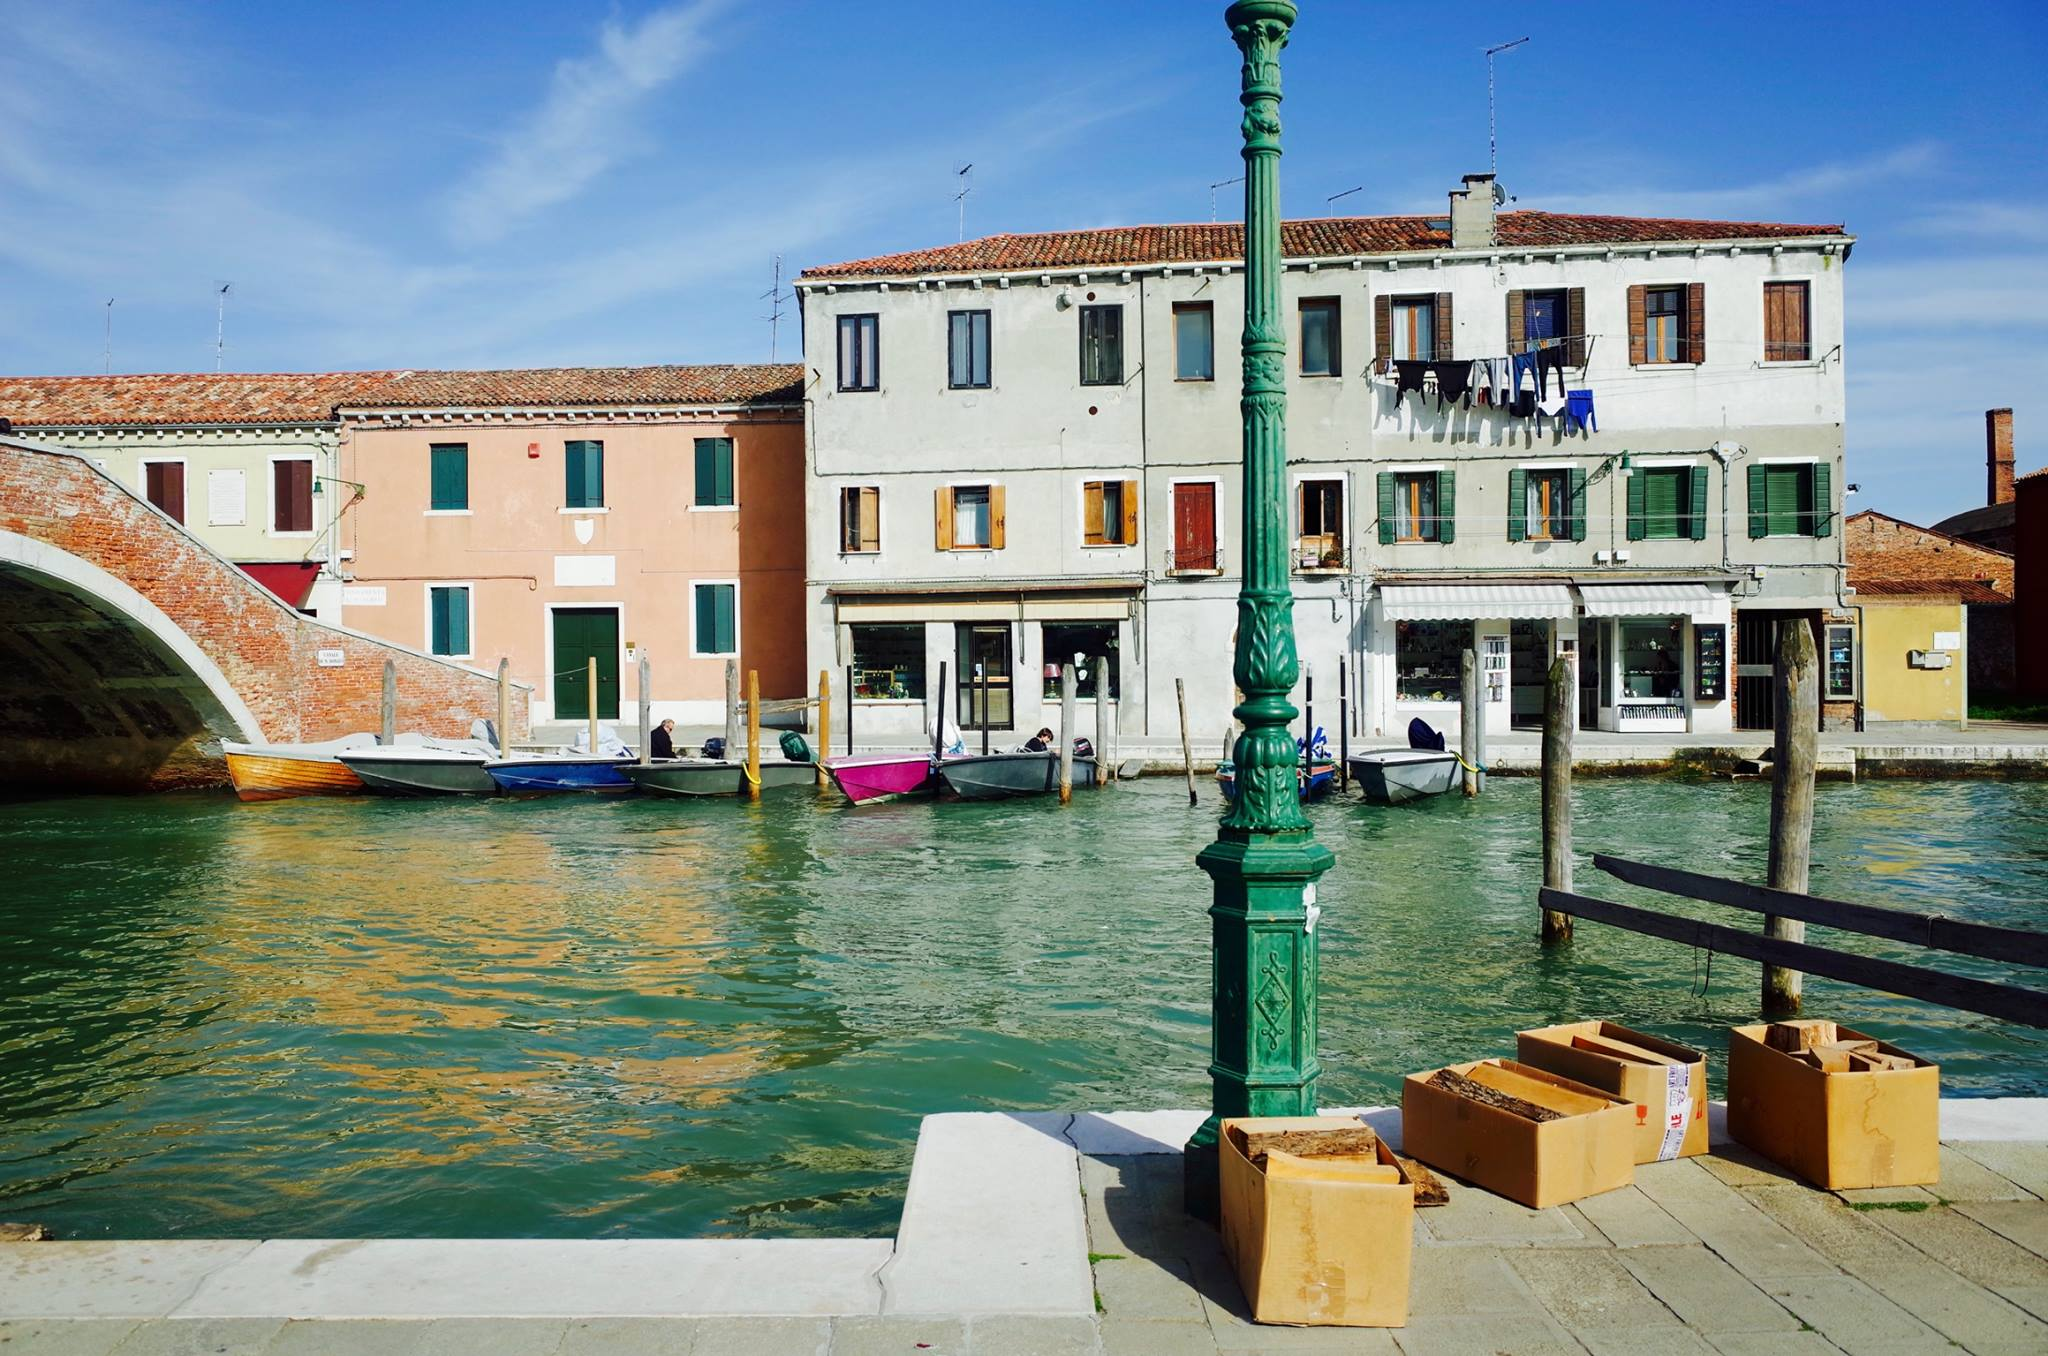 A canal in Venice, Italy, with buildings in the background, a bridge, and a green lamppost